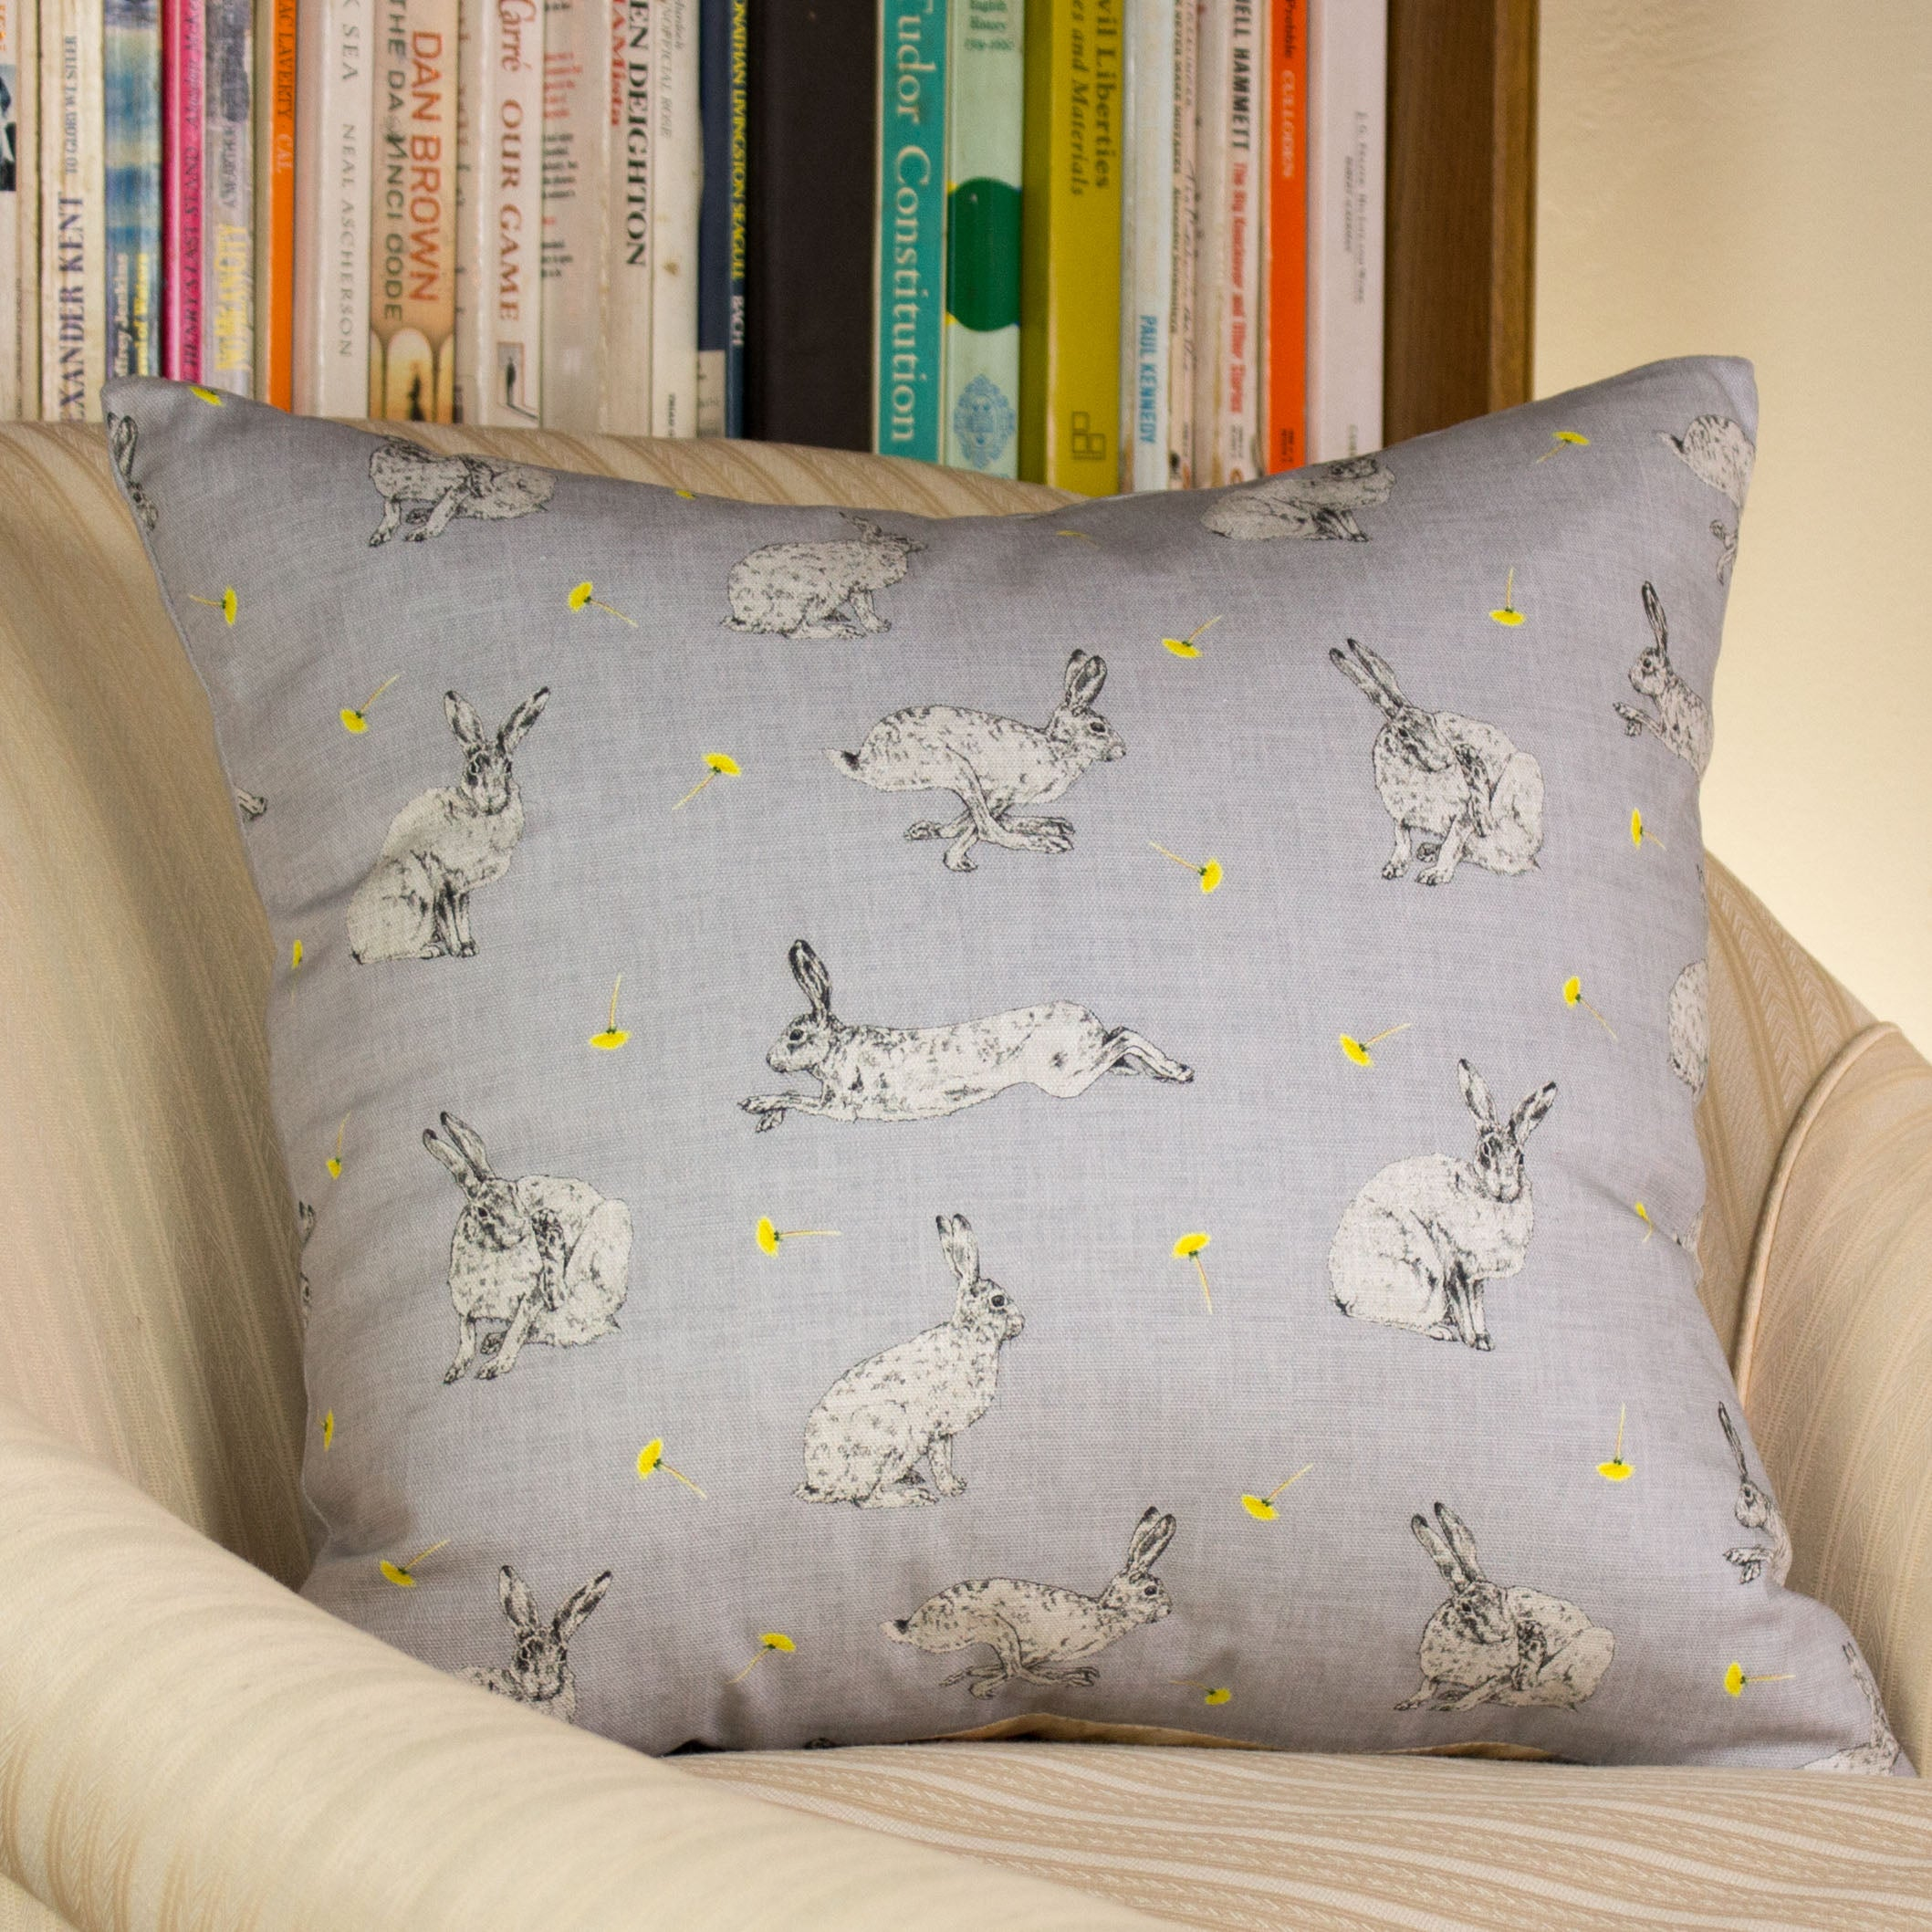 A cushion featuring a hare and dandelion design